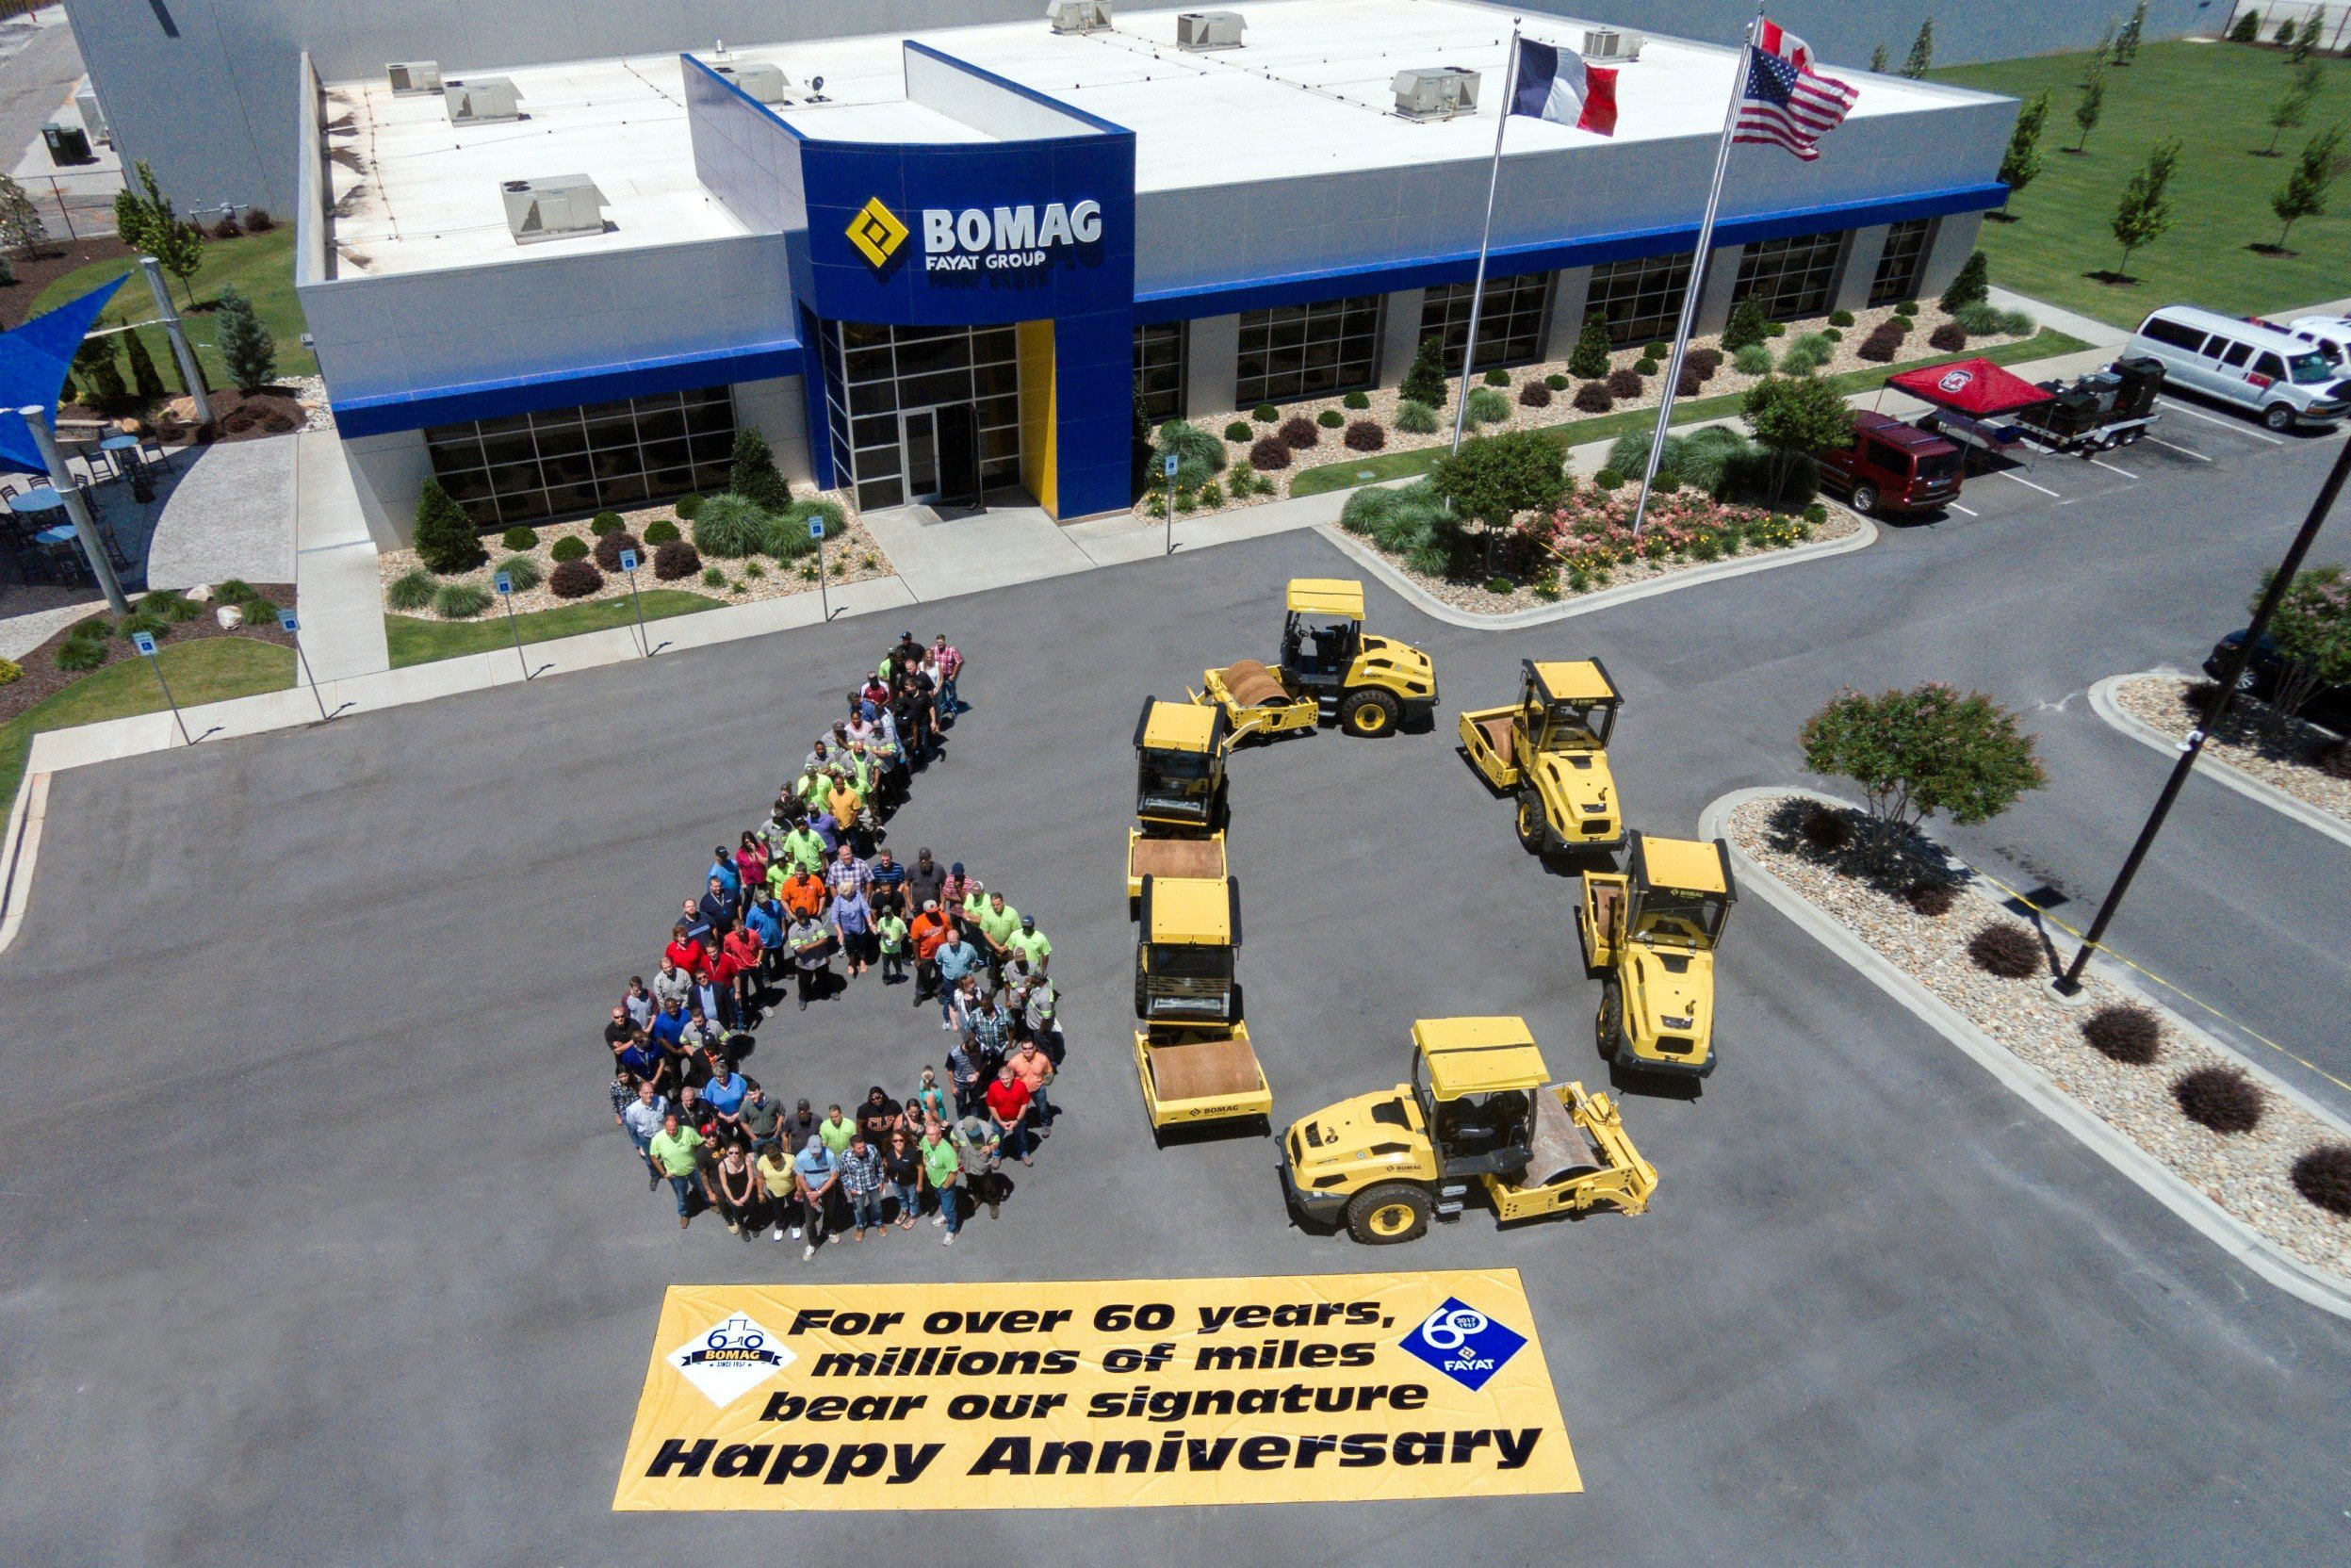 Bomag marks 60 years as a supplier to road construction for Soil 60 years